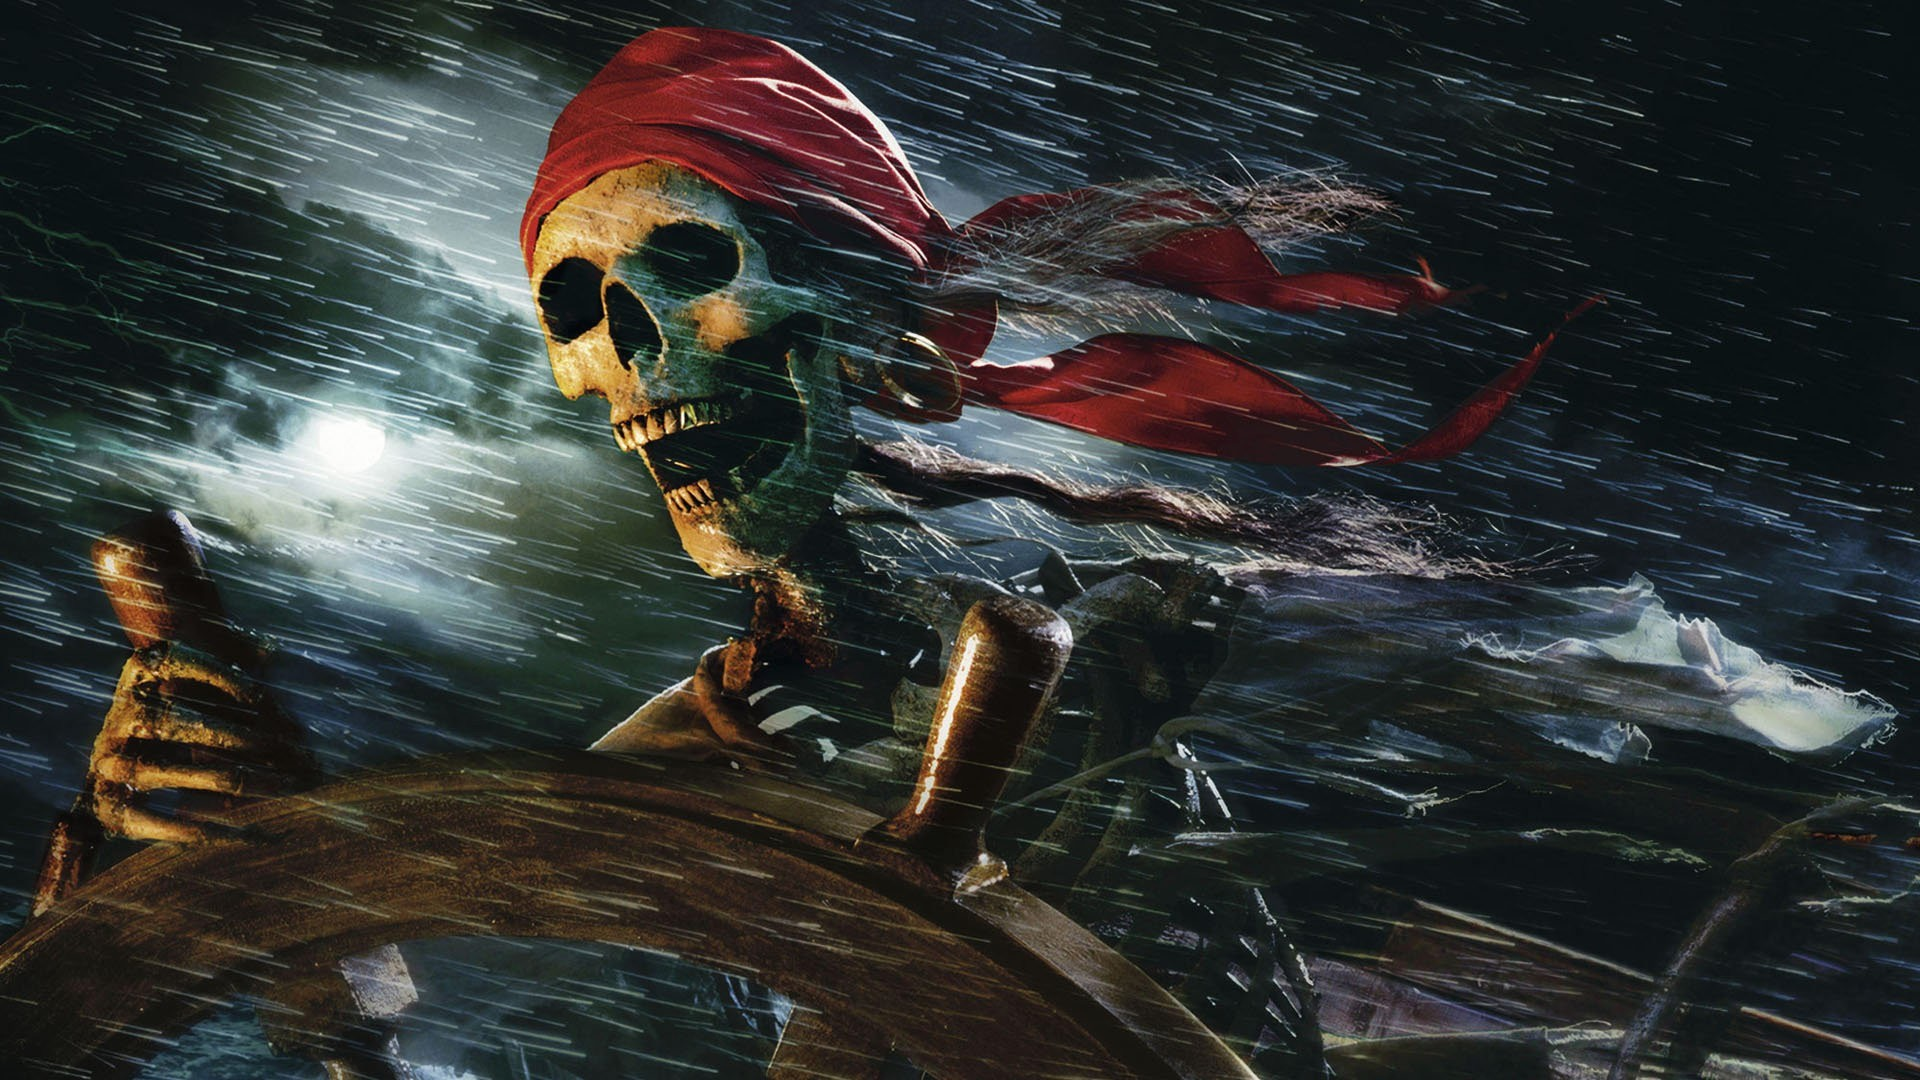 Res: 1920x1080, Pirates Of The Caribbean Skull Wallpaper Images #Sc8